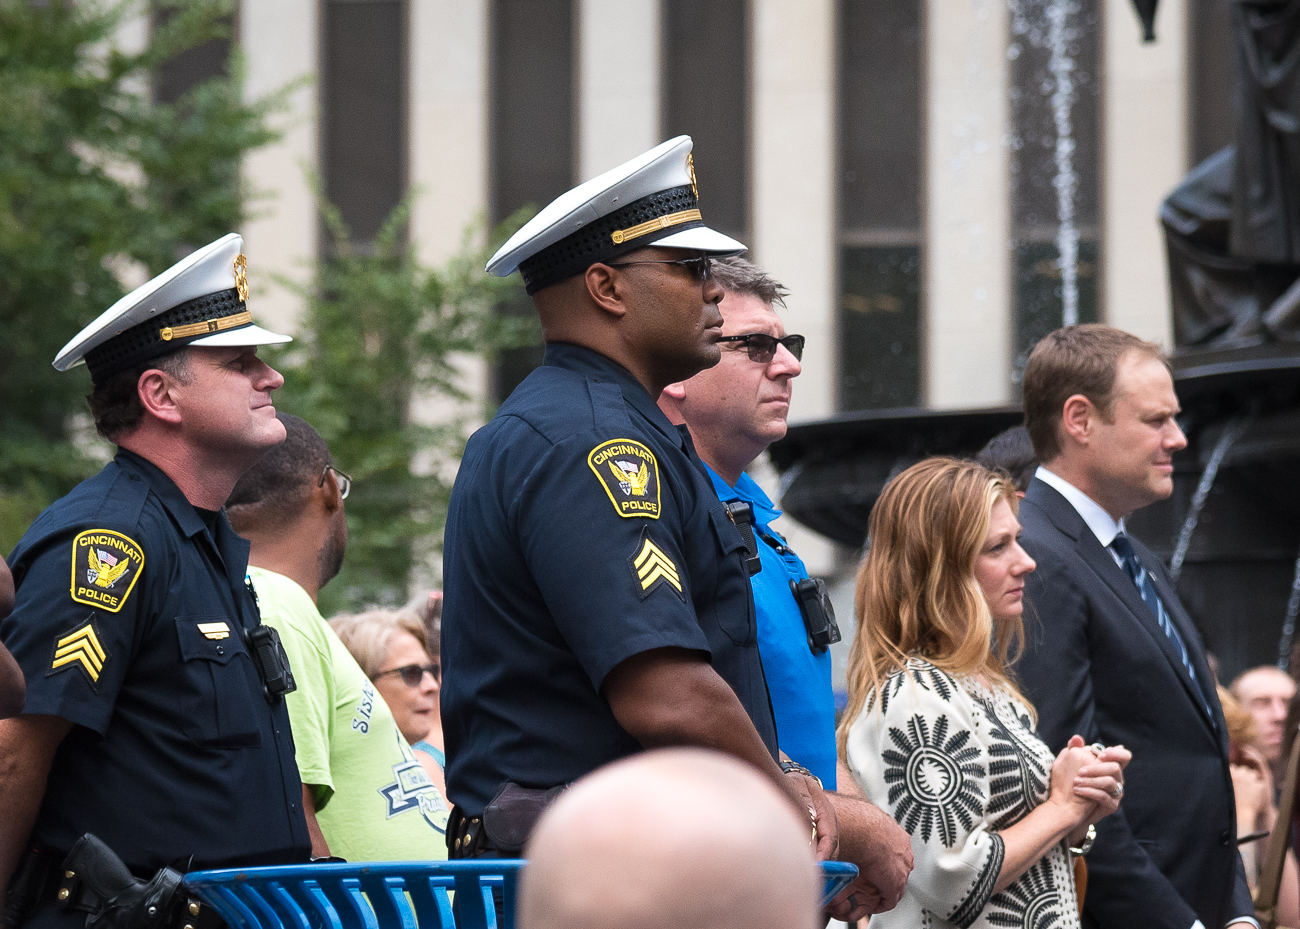 Law enforcement were among the many people at the event. / Image: Phil Armstrong, Cincinnati Refined // Published: 9.8.18